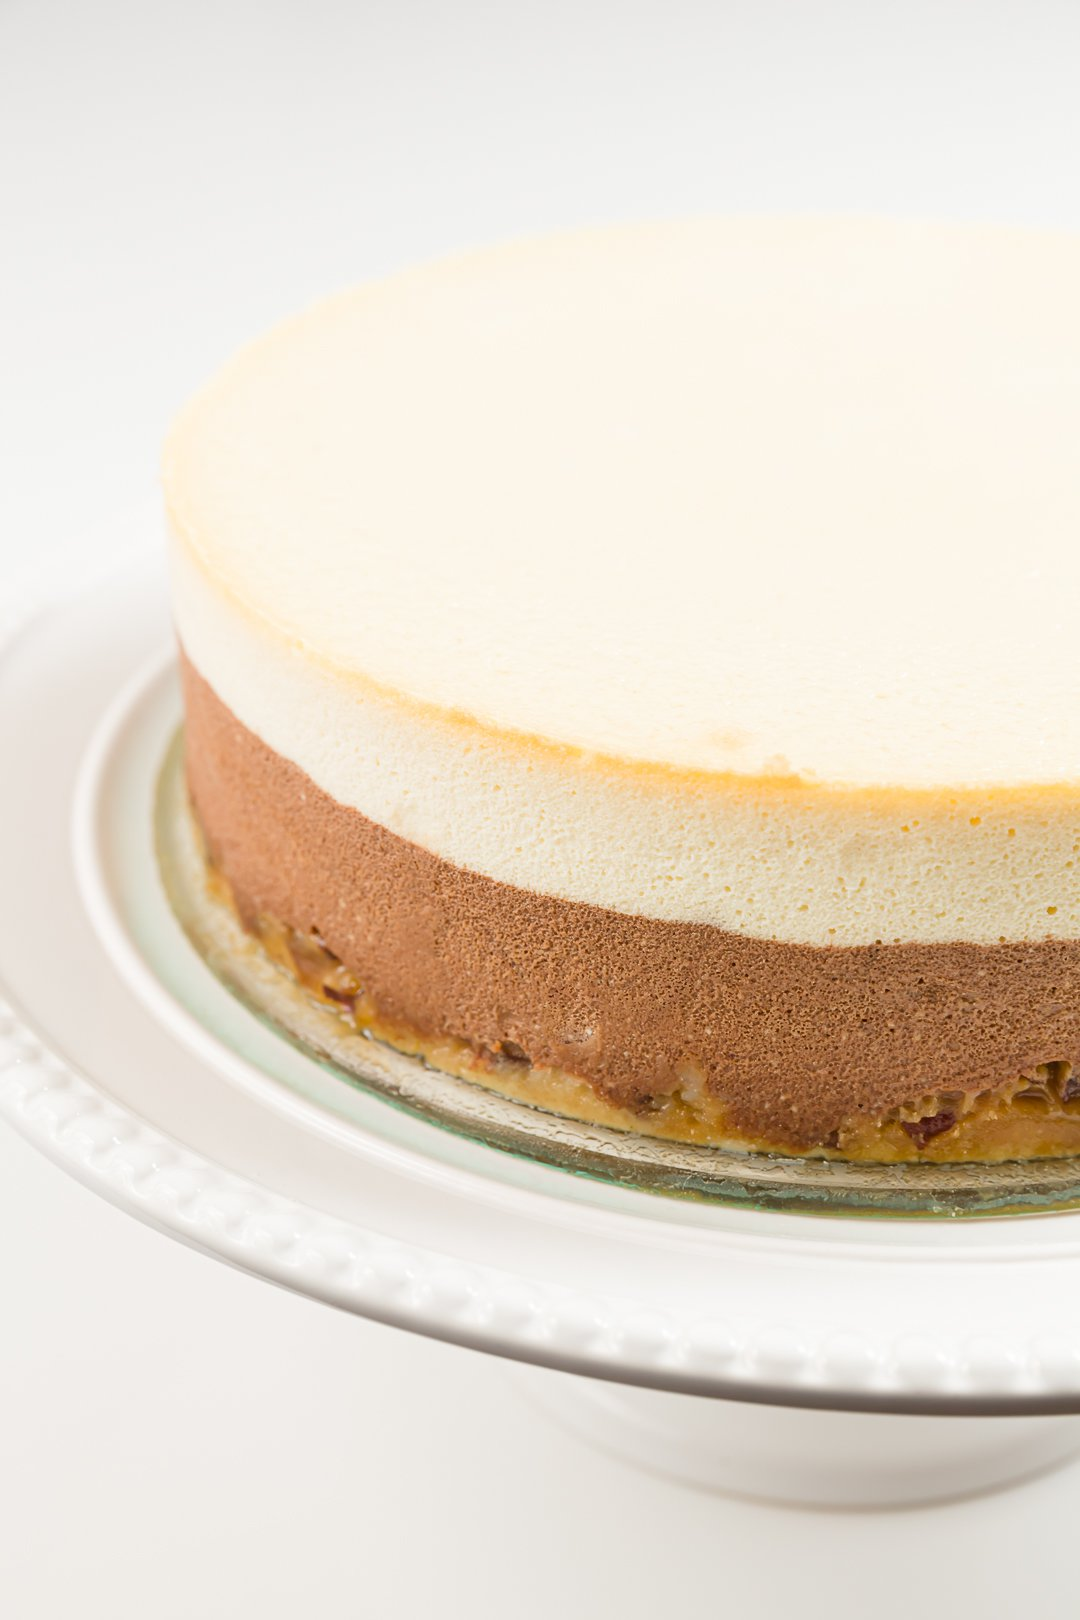 Cheesecake with no cracks